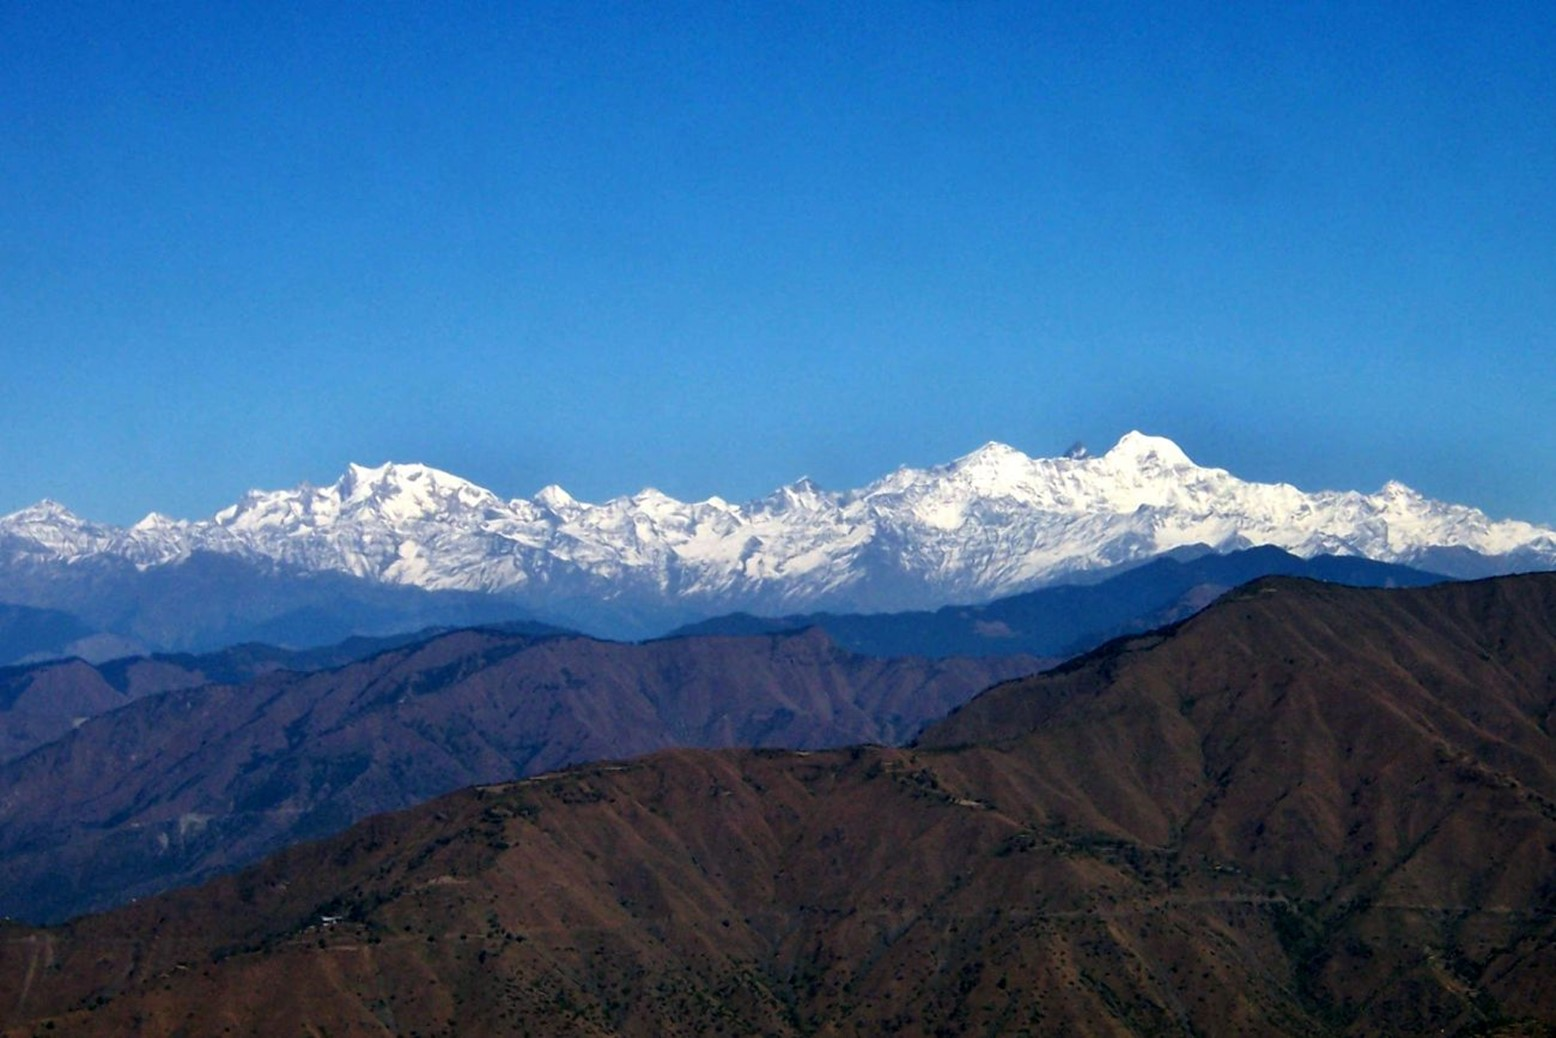 September 22. This Day in History. My Quest for Freedom Traps me in Slavery. My Journey to Chakrata and Beyond.